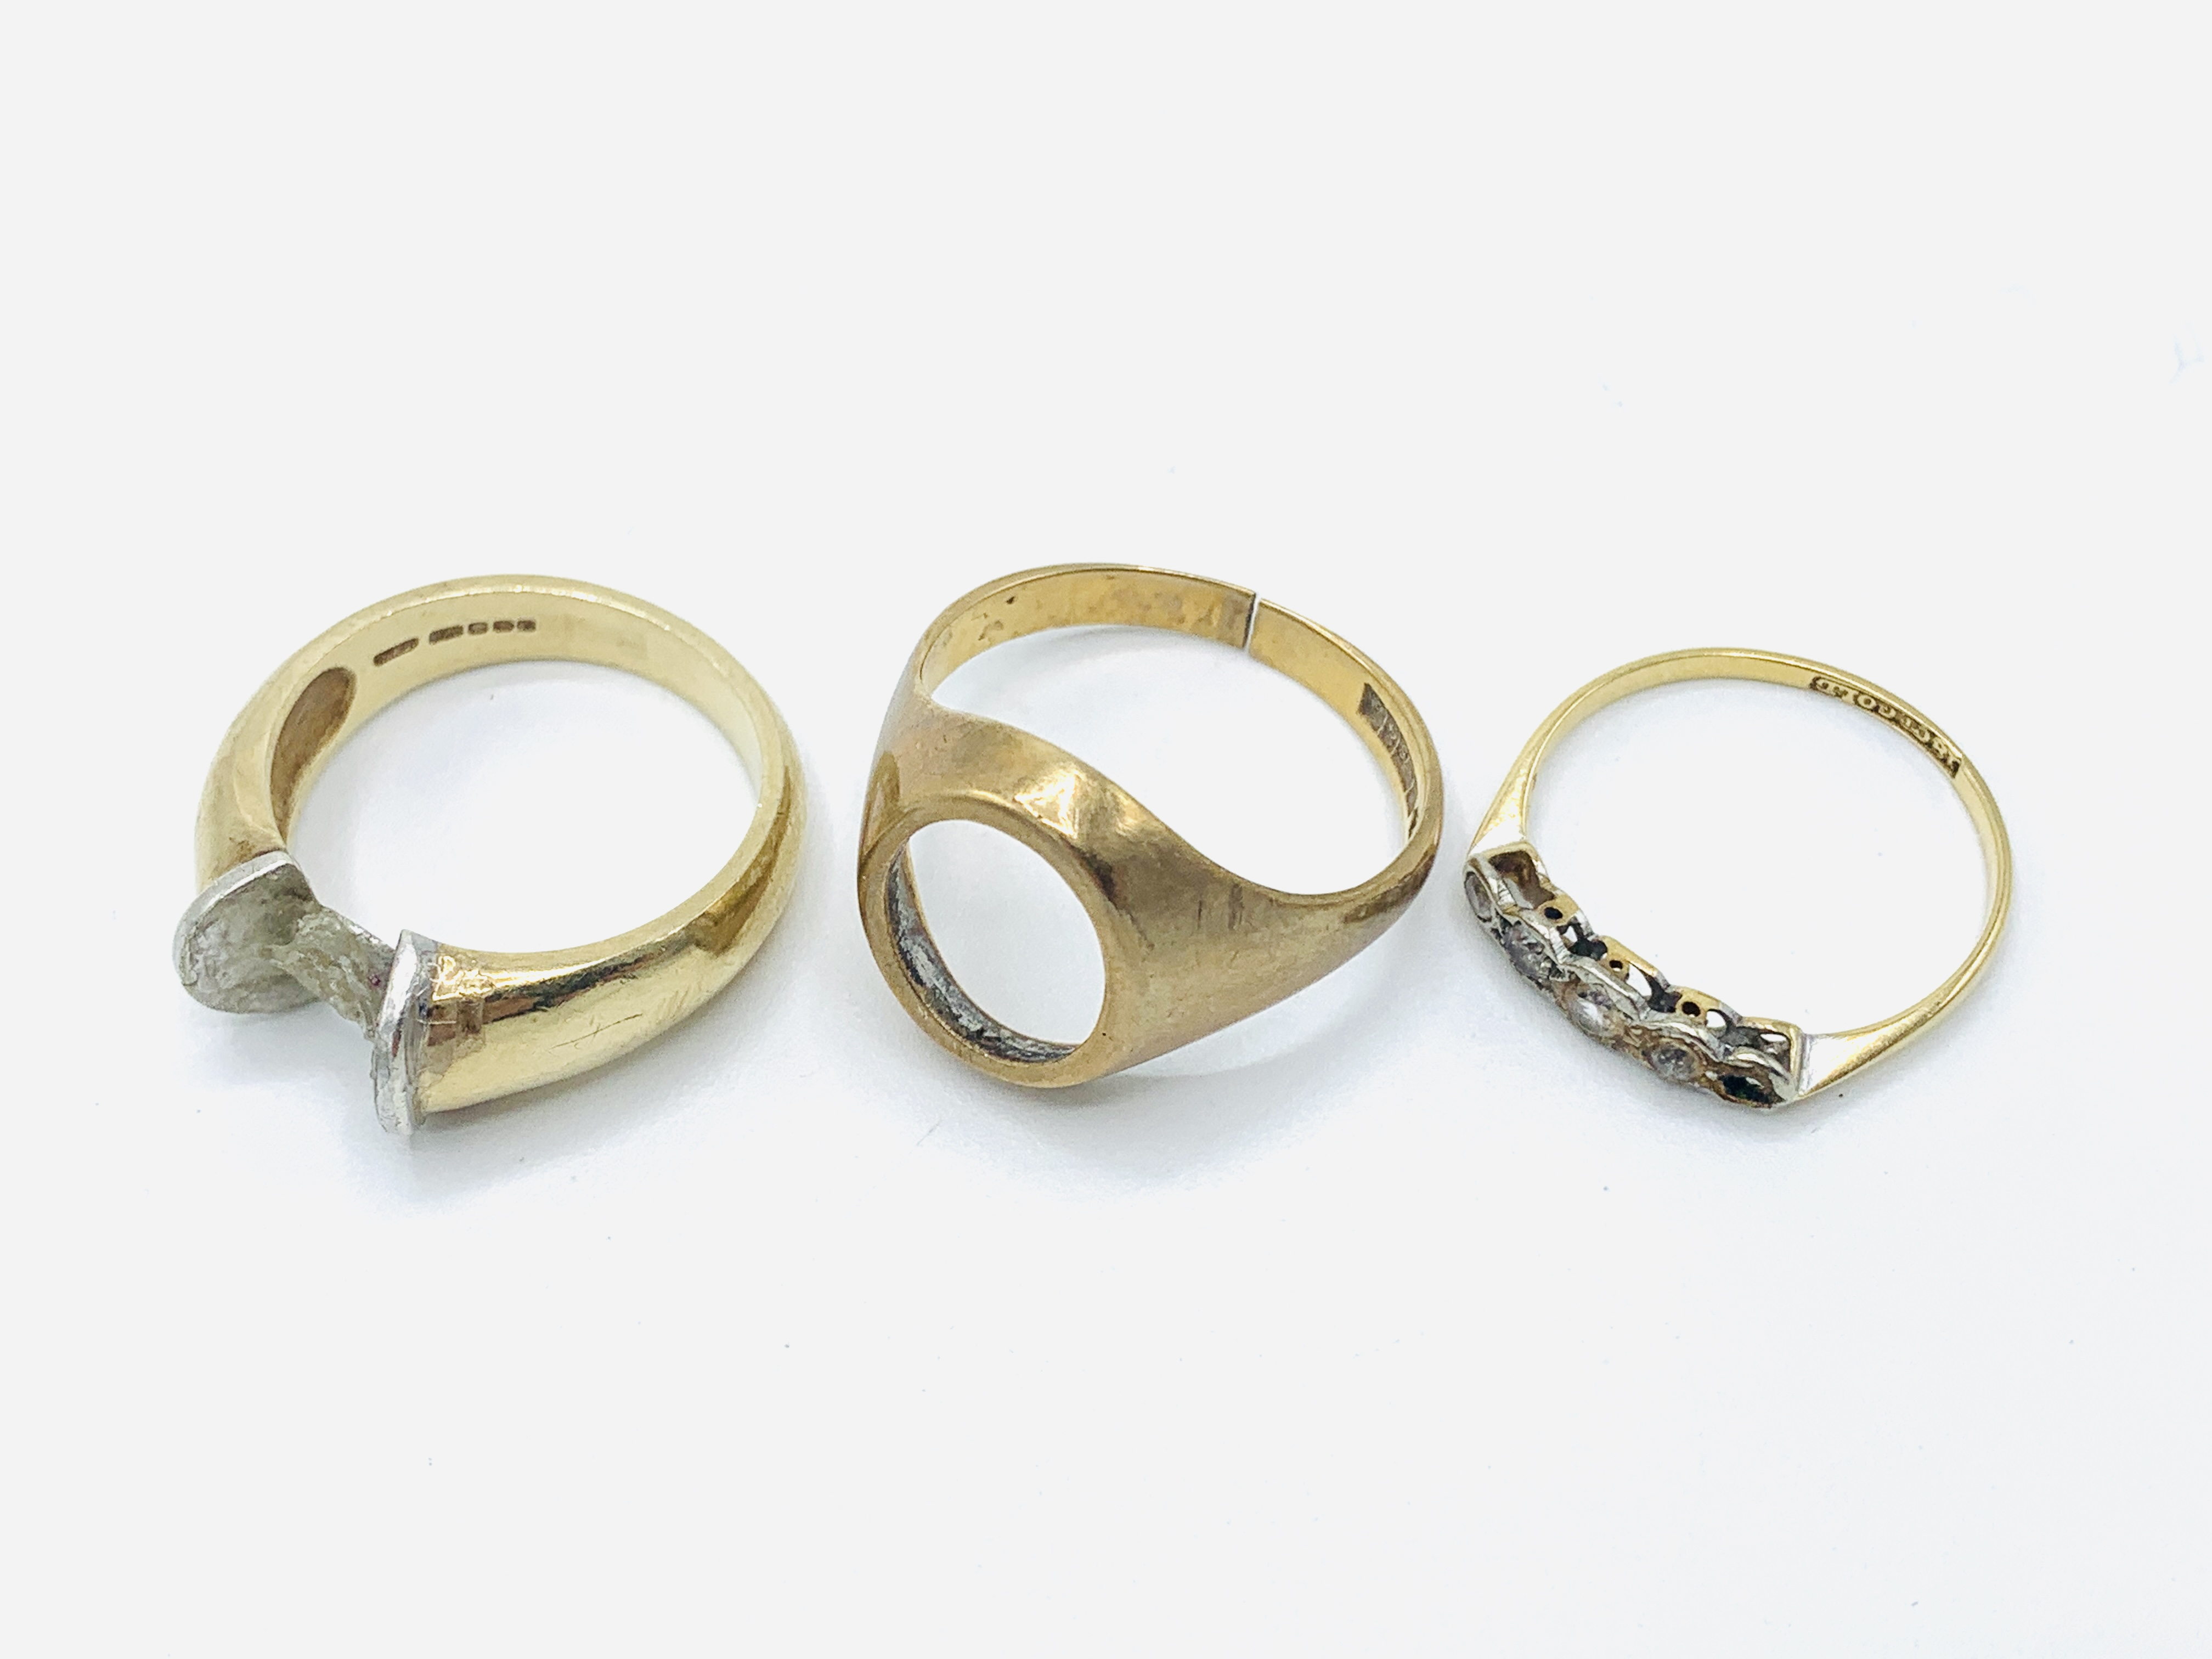 18ct gold and five white stone ring; together with two 9ct gold rings - Image 2 of 2